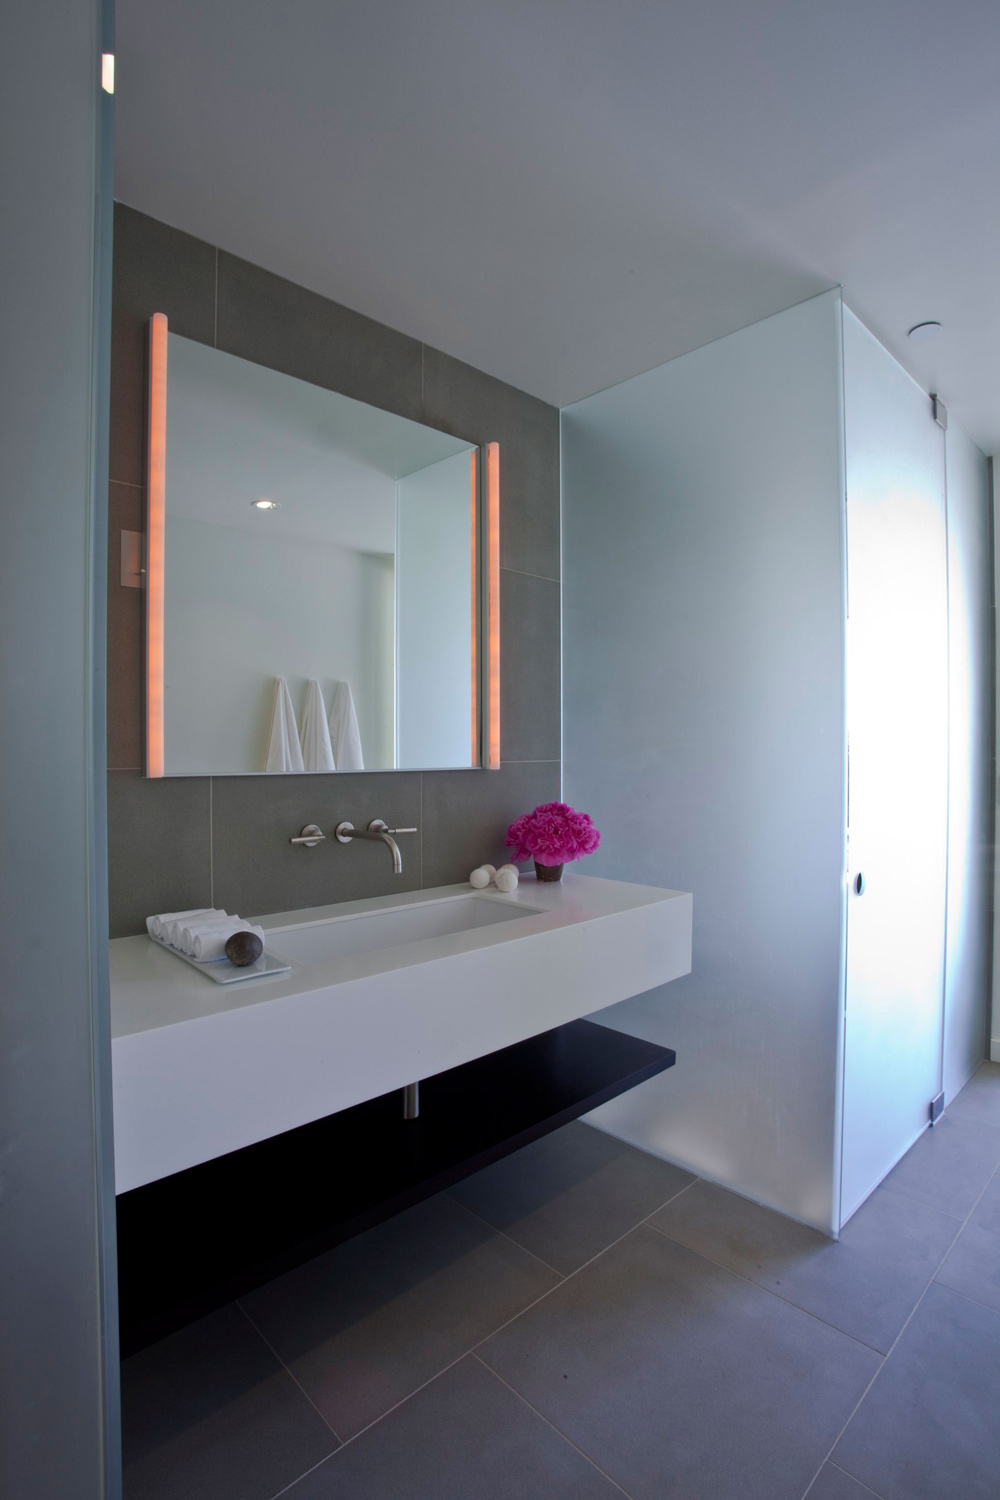 Luxury   Bathroom  Pinterest  Vanity Units Lighting Design And Cab